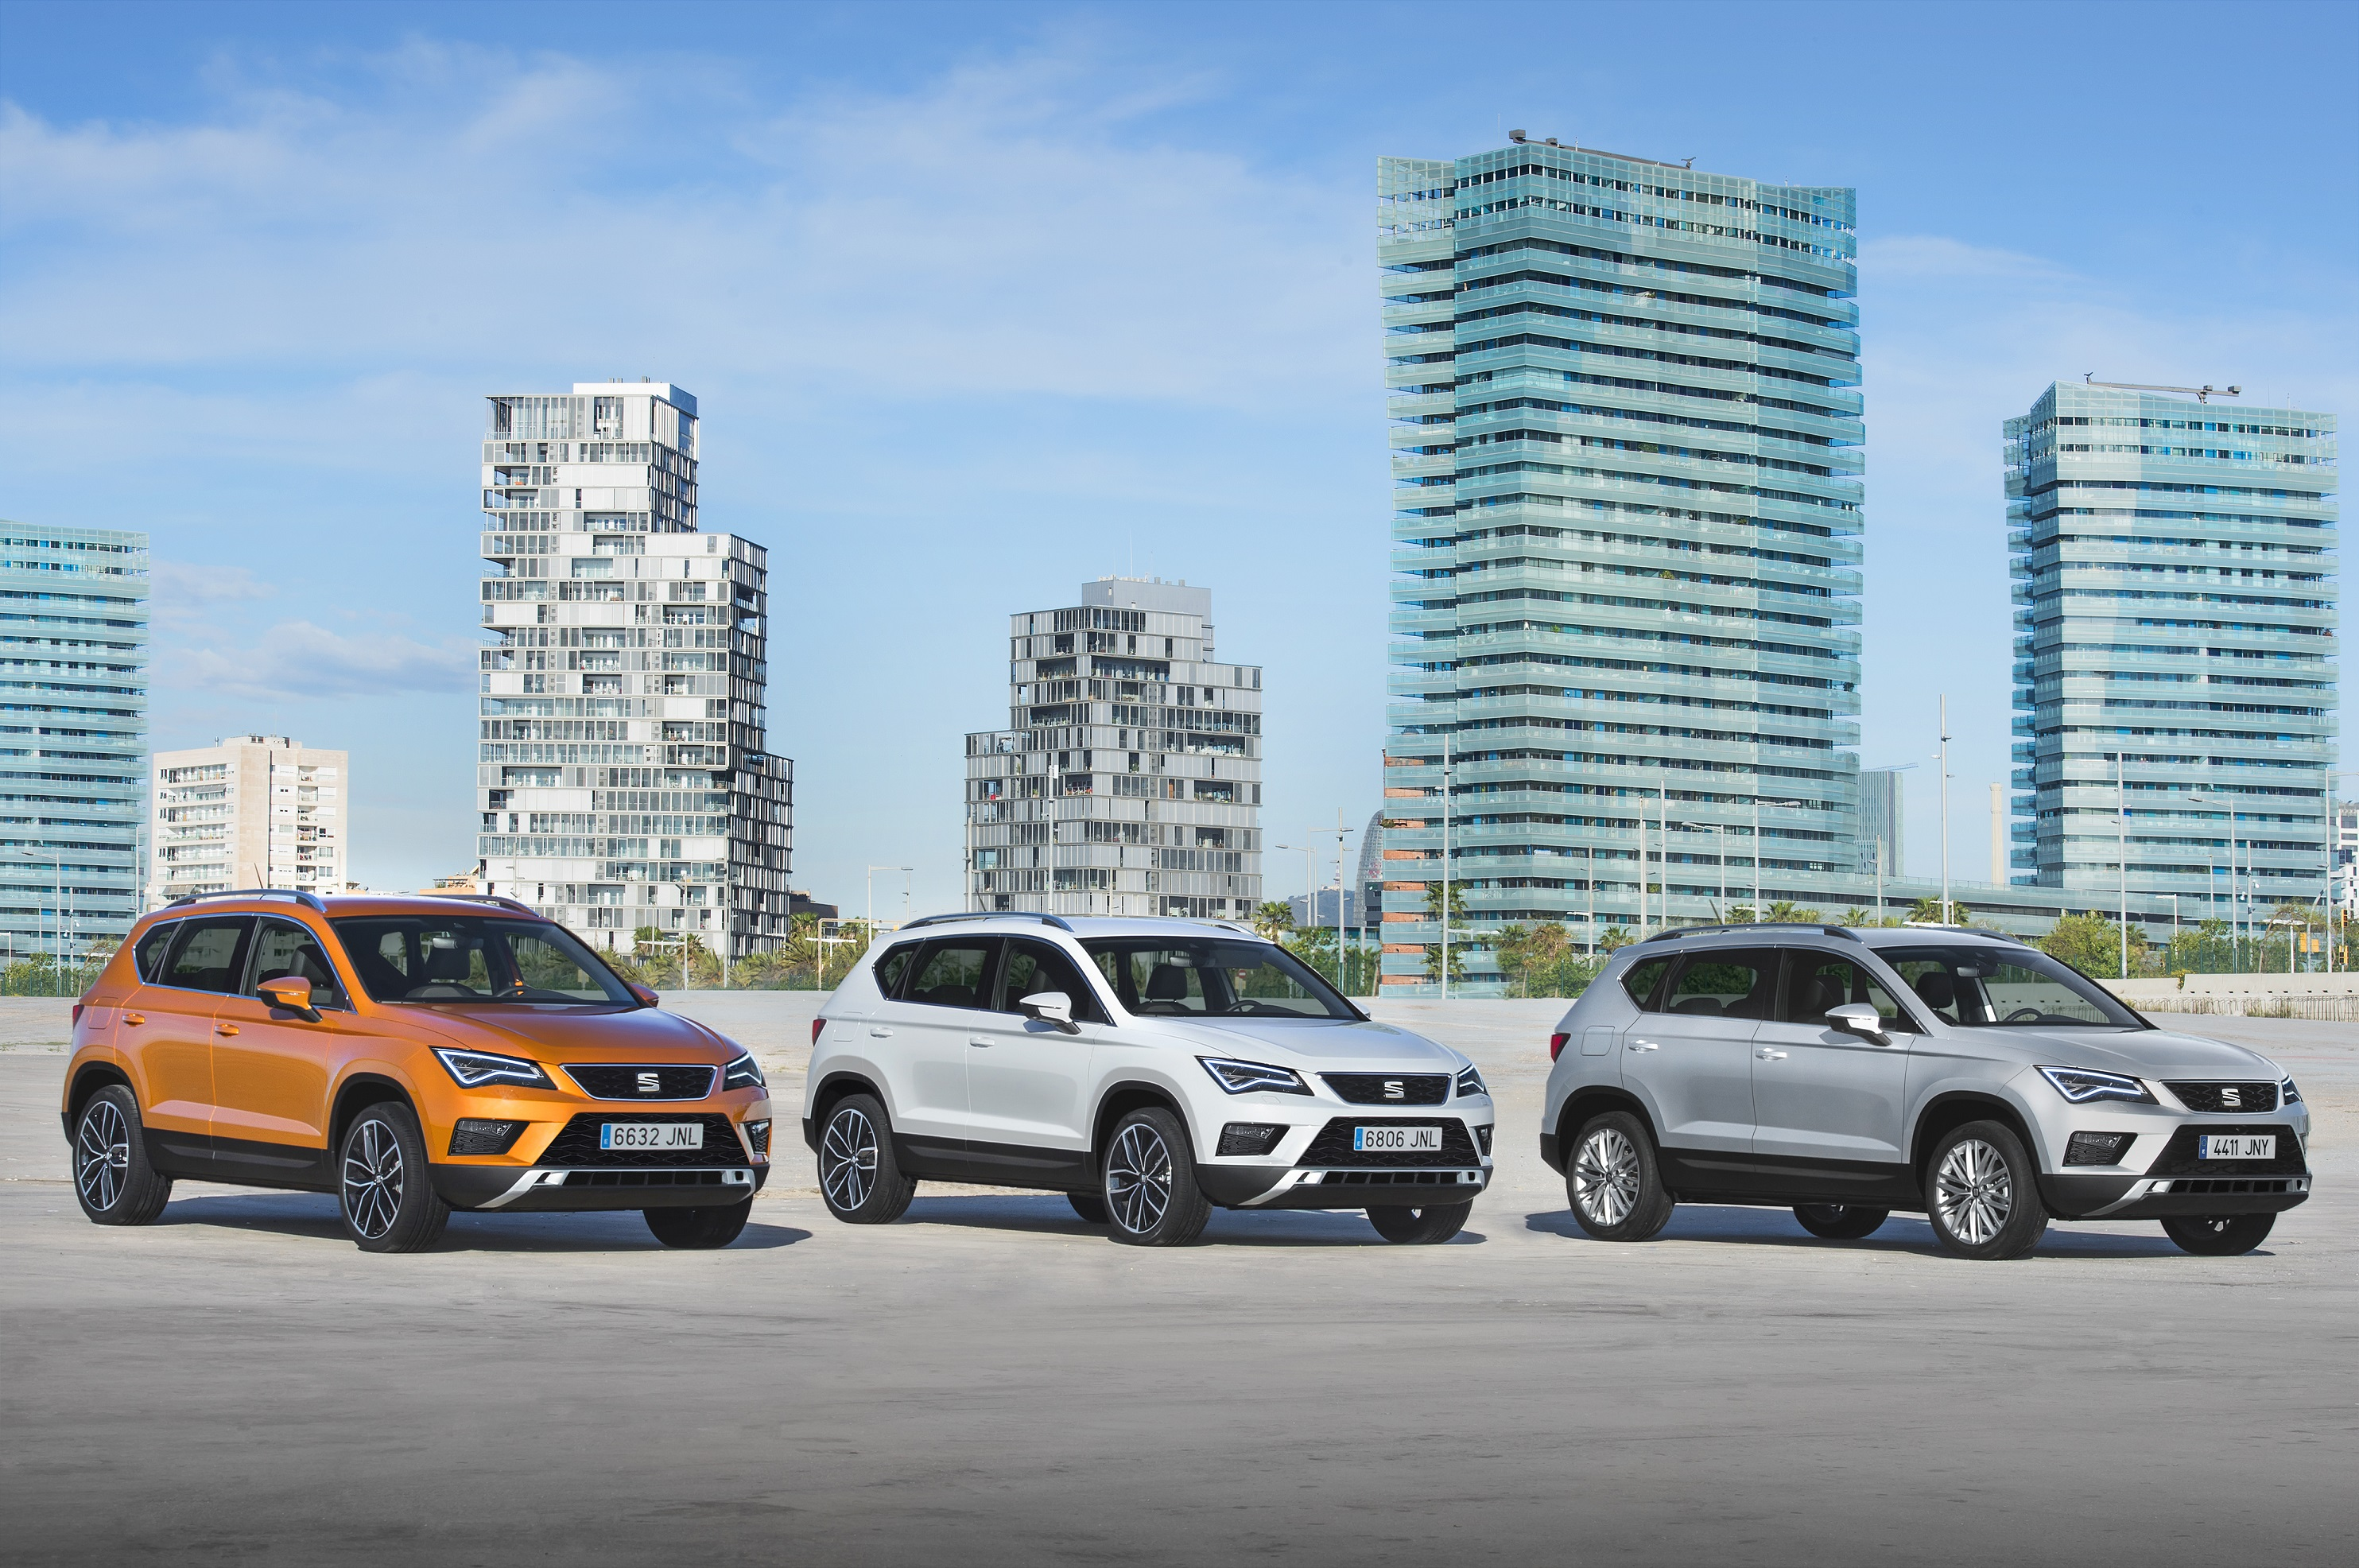 SEAT unveils its first SUV – The new SEAT Ateca